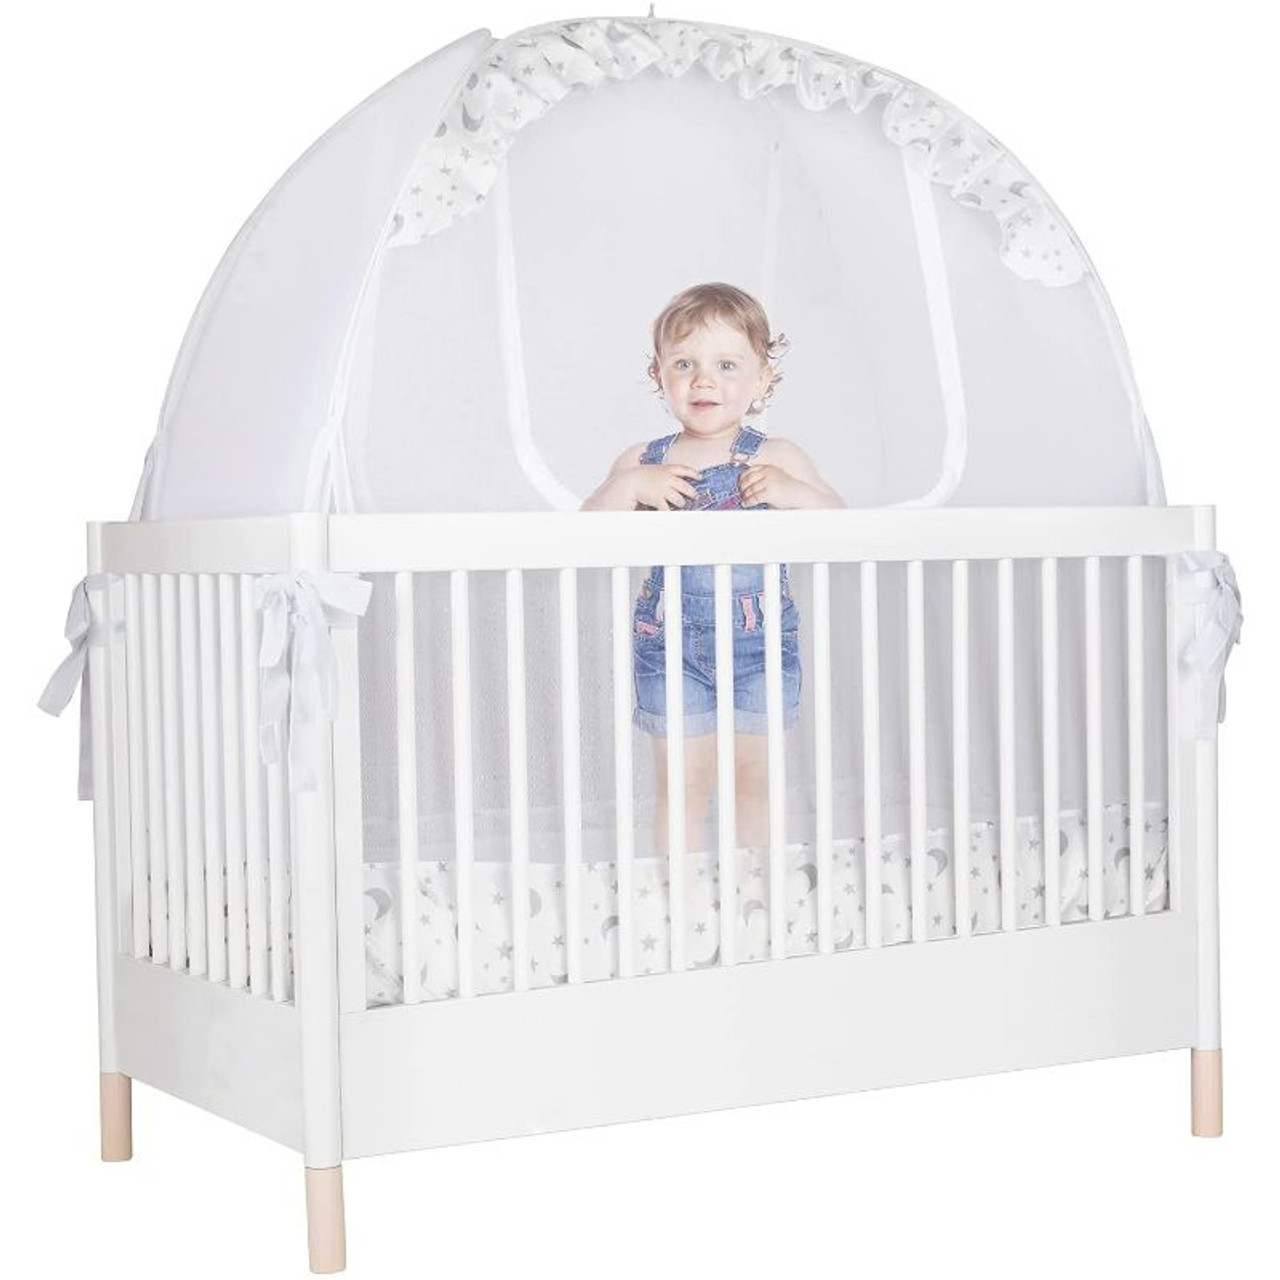 Pro Baby Crib Safety Pop Up Tent